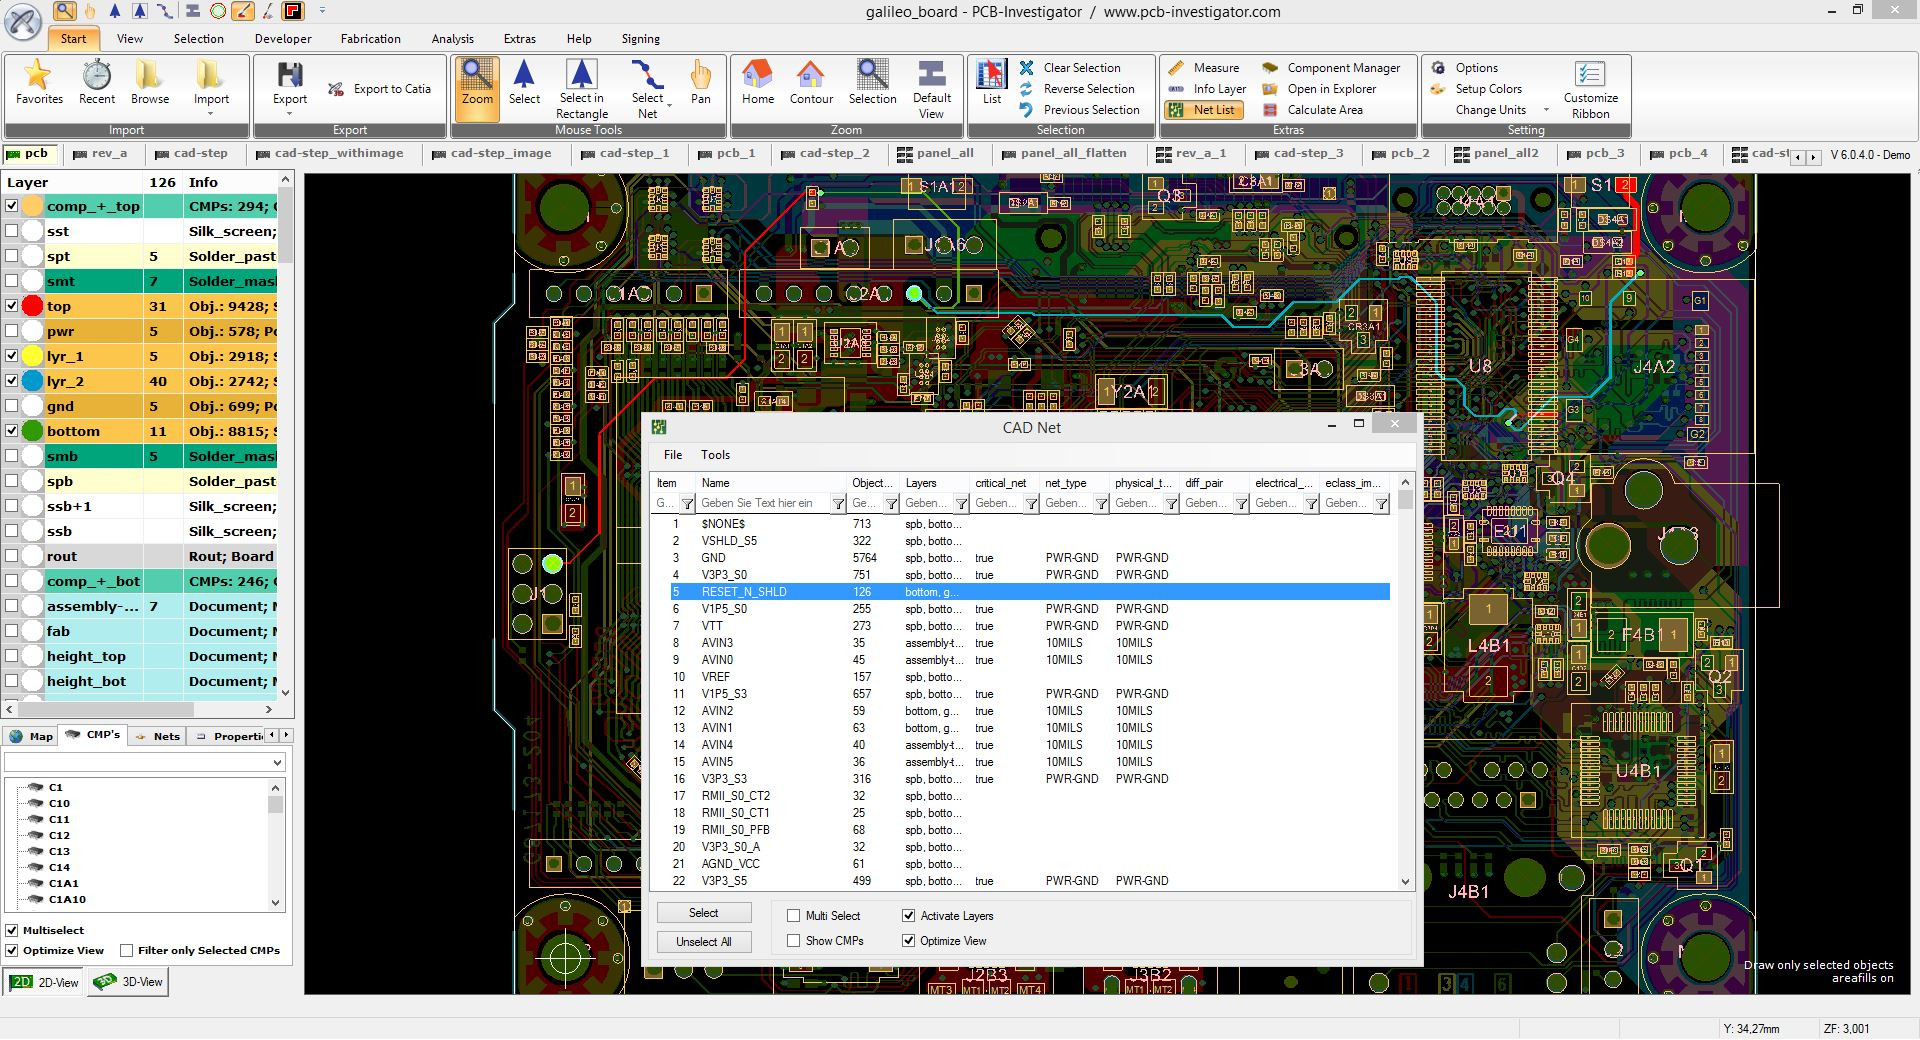 How to use CAD Net List | PCB-Investigator